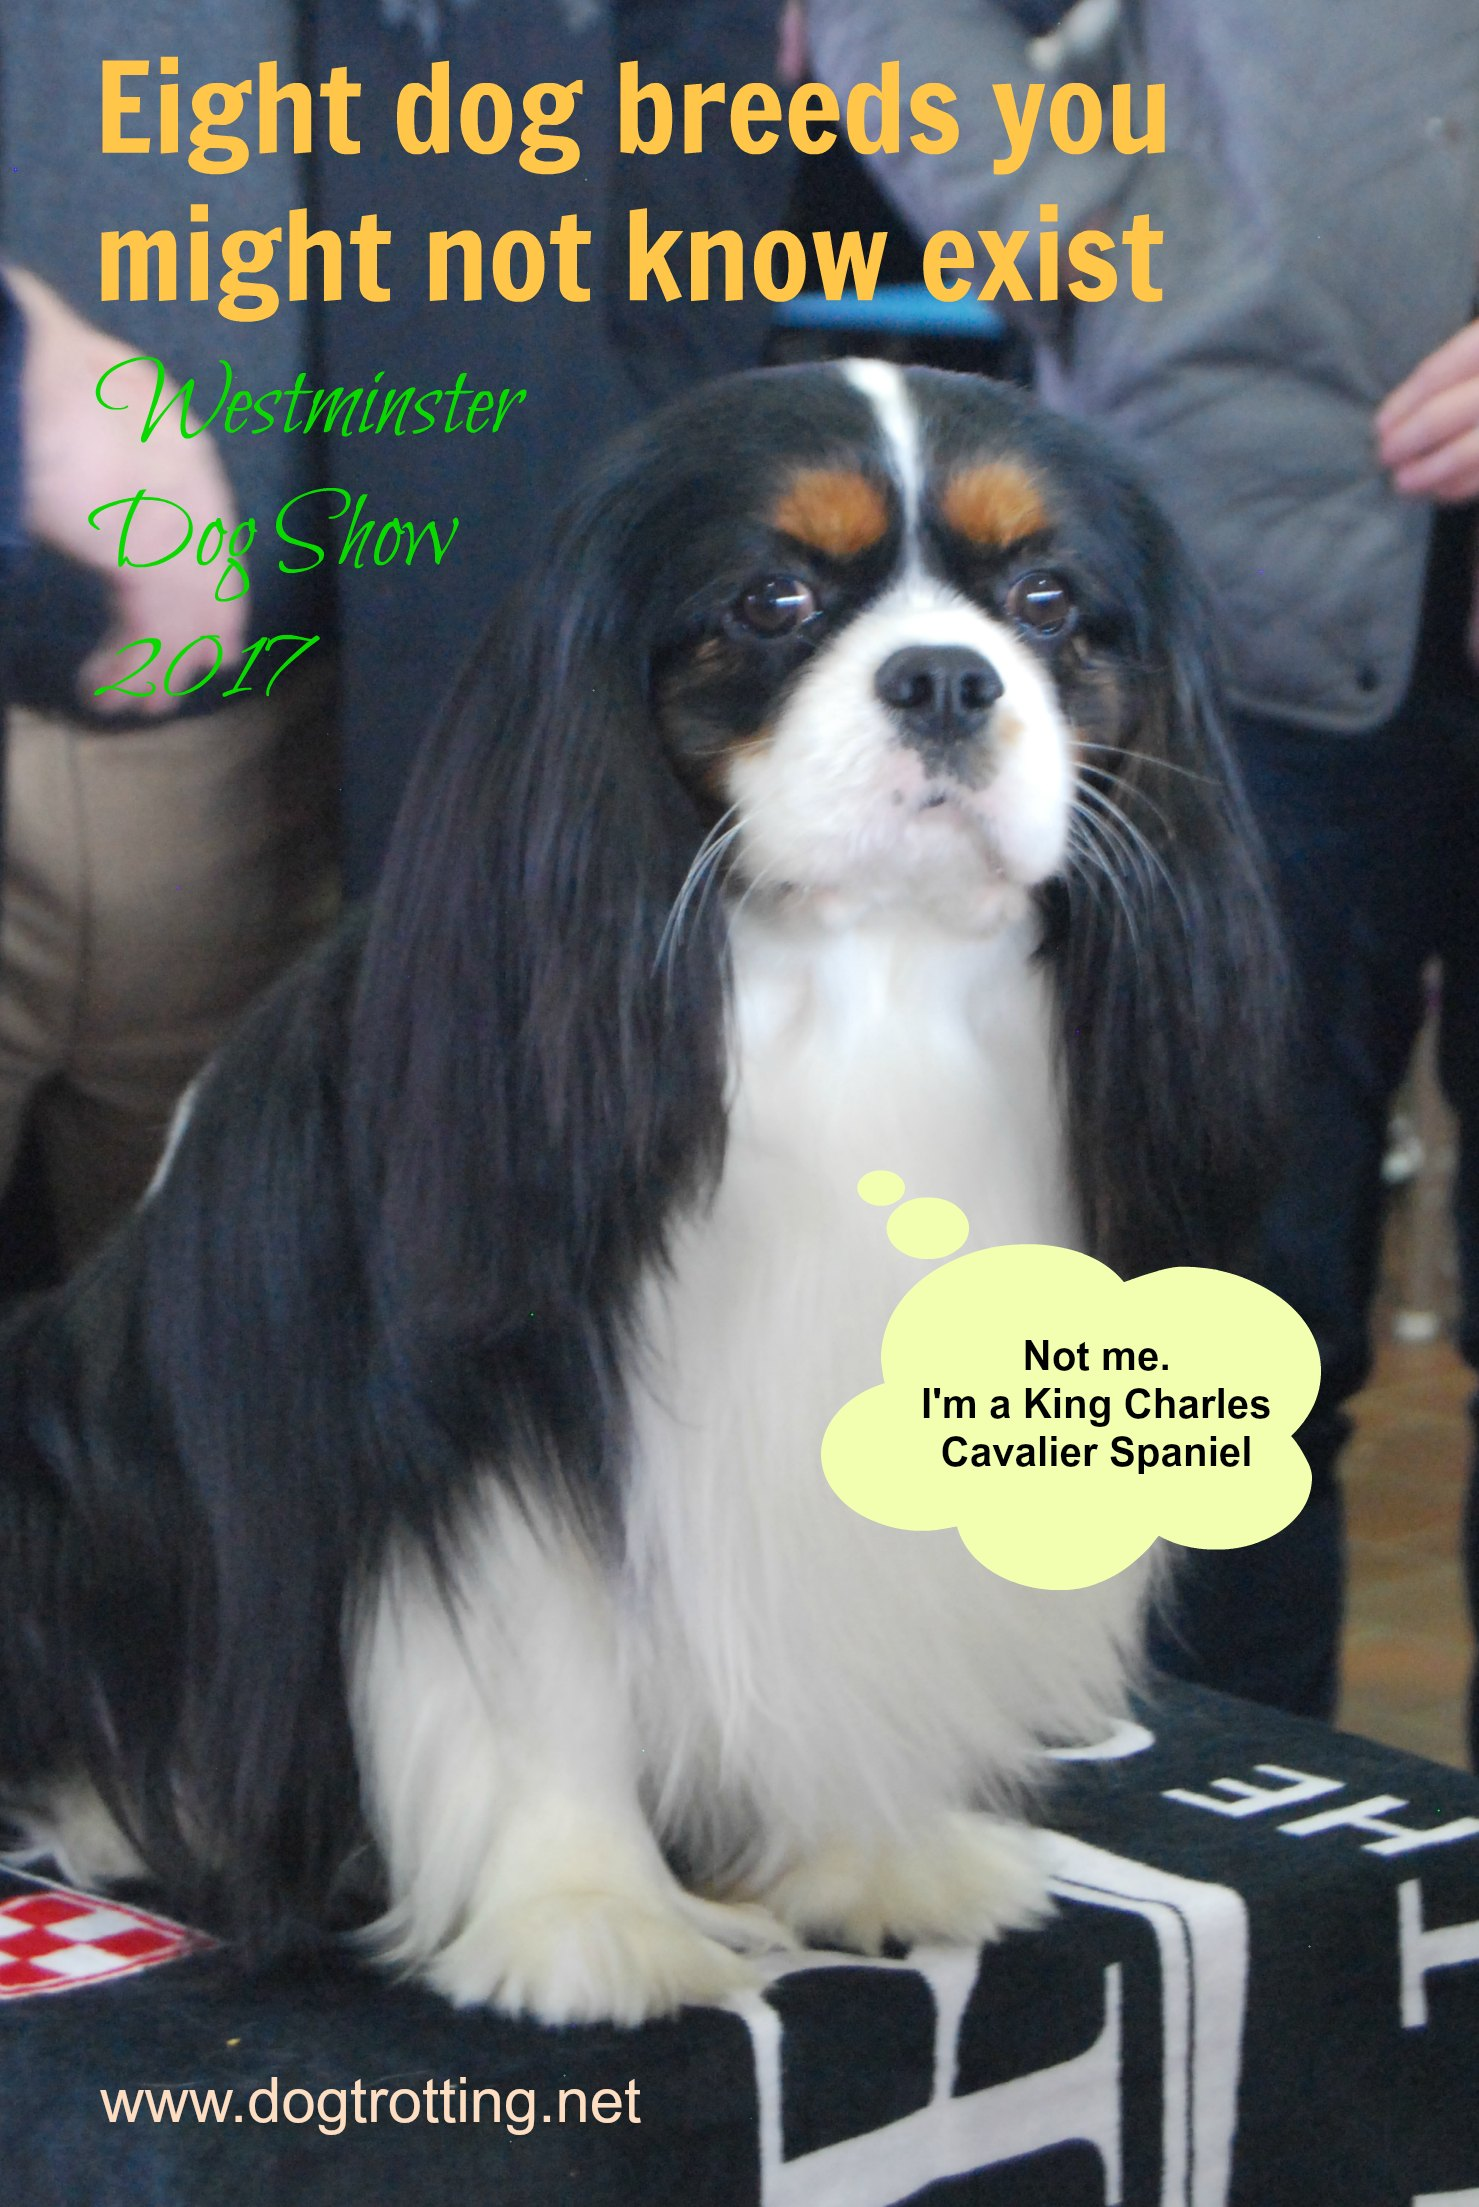 Westminster Dog Show Eight Unusual Breeds